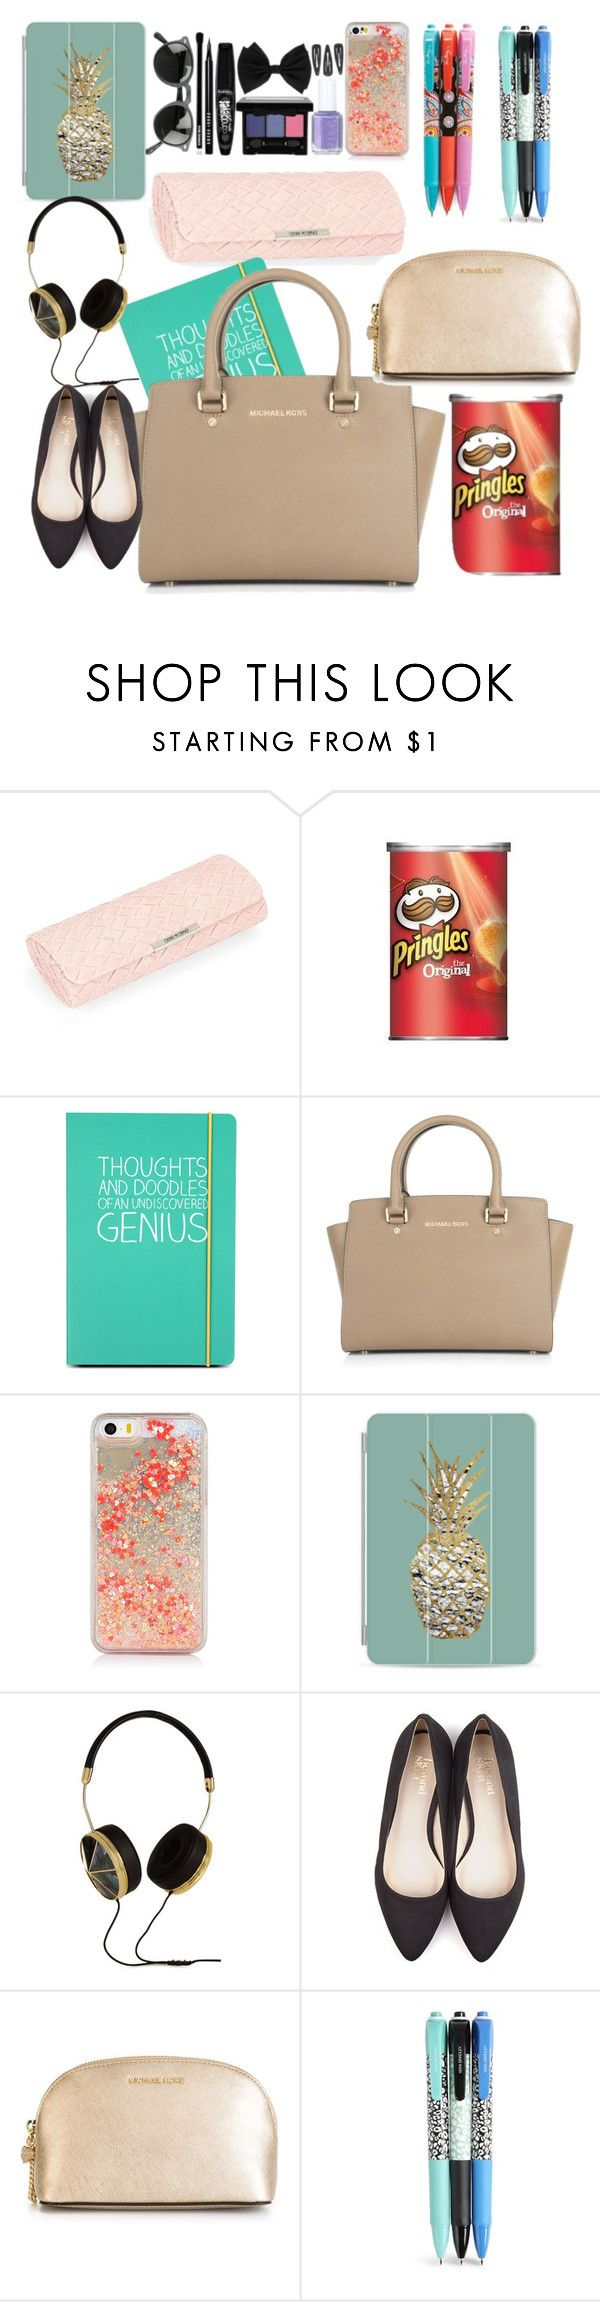 """What's in my purse"" by ebony-kayla ❤ liked on Polyvore featuring beauty, Corinne McCormack, Happy Jackson, Michael Kors, Casetify, Frends, Beyond Skin, MICHAEL Michael Kors and Vera Bradley"